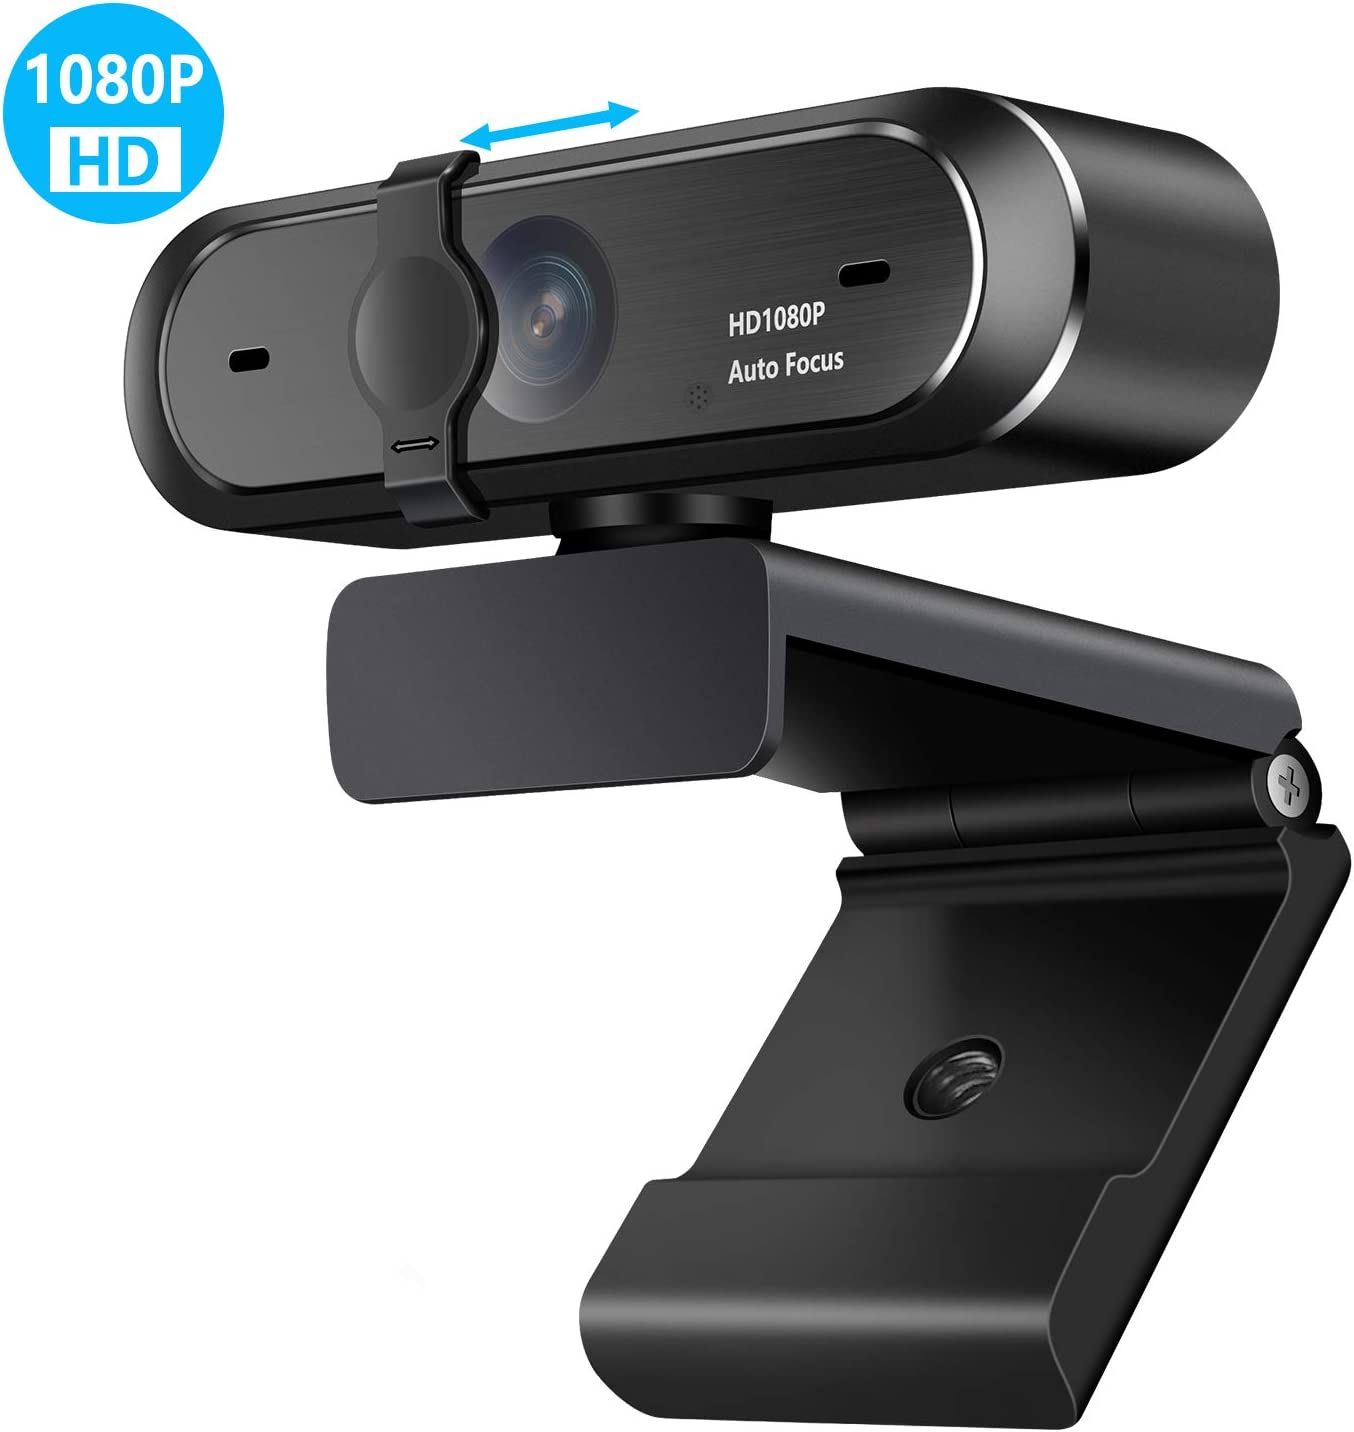 Webcam with Microphone(30fps),ELLASSAY Full HD 1080P Plug & Play Webcam,with Built-in Dual Microphone, 90°Wide-Angle View, Auto Focus for Online Class Computer Widescreen Video Calling and Recording